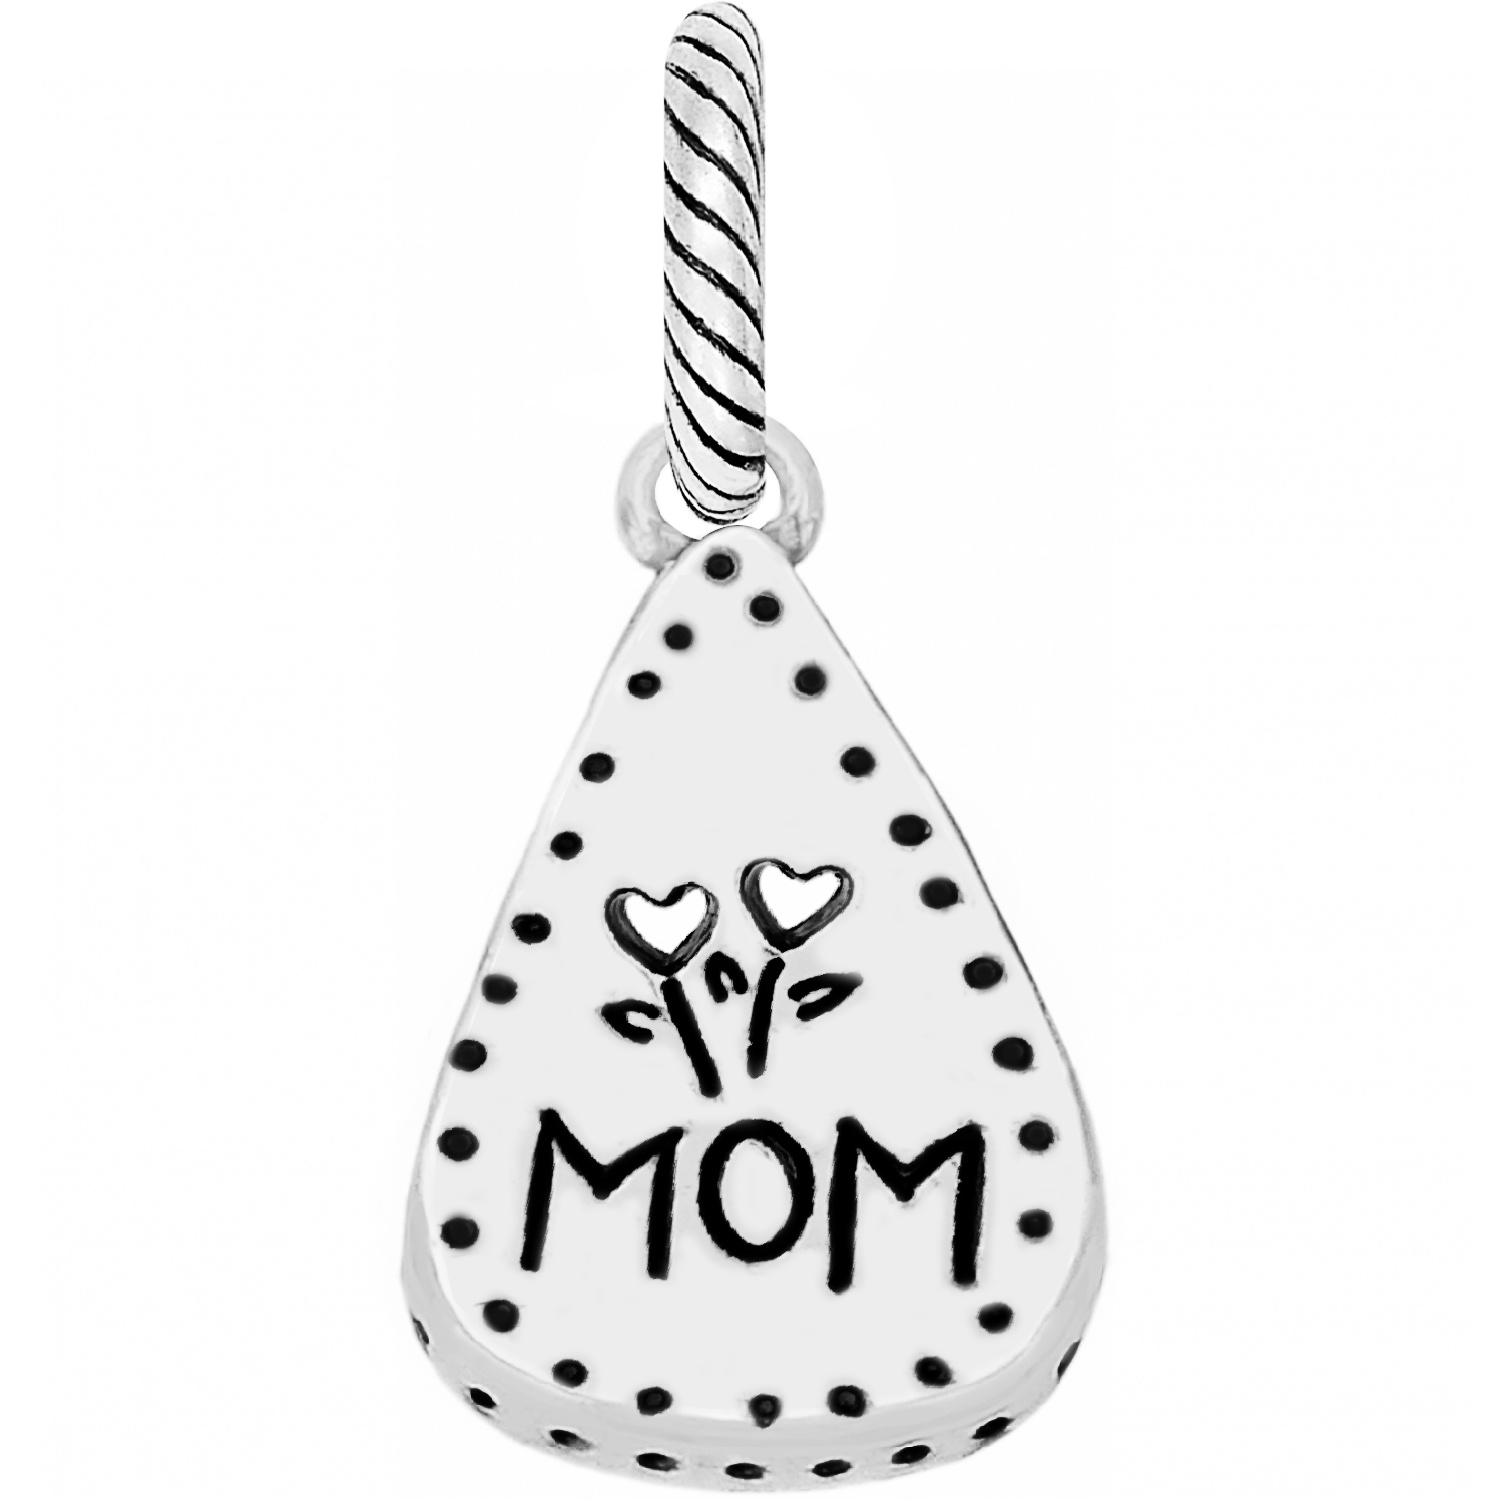 mother abc note mom charm charms